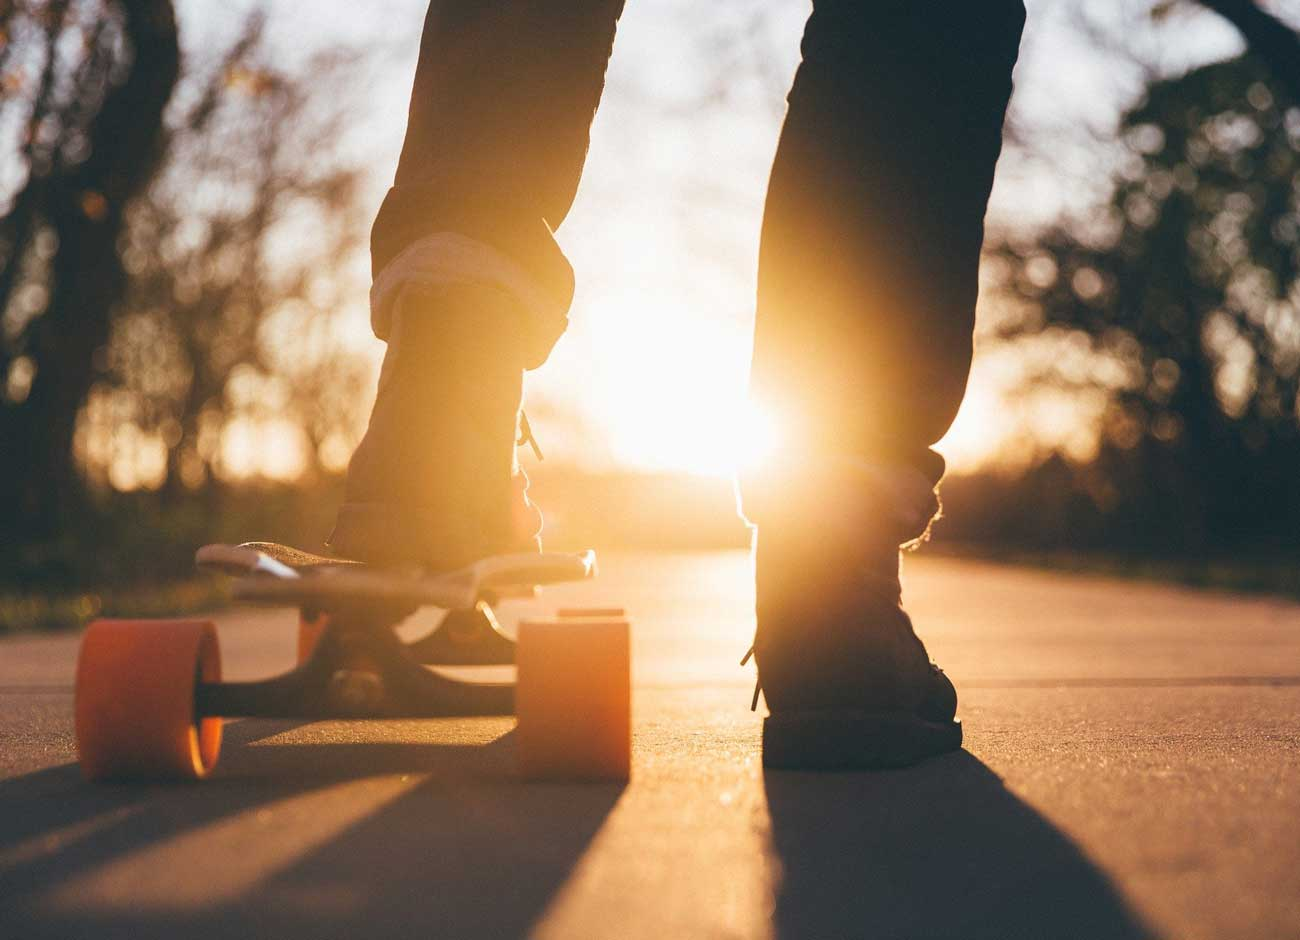 close up image of a teens feet on a skateboard riding into the sunset